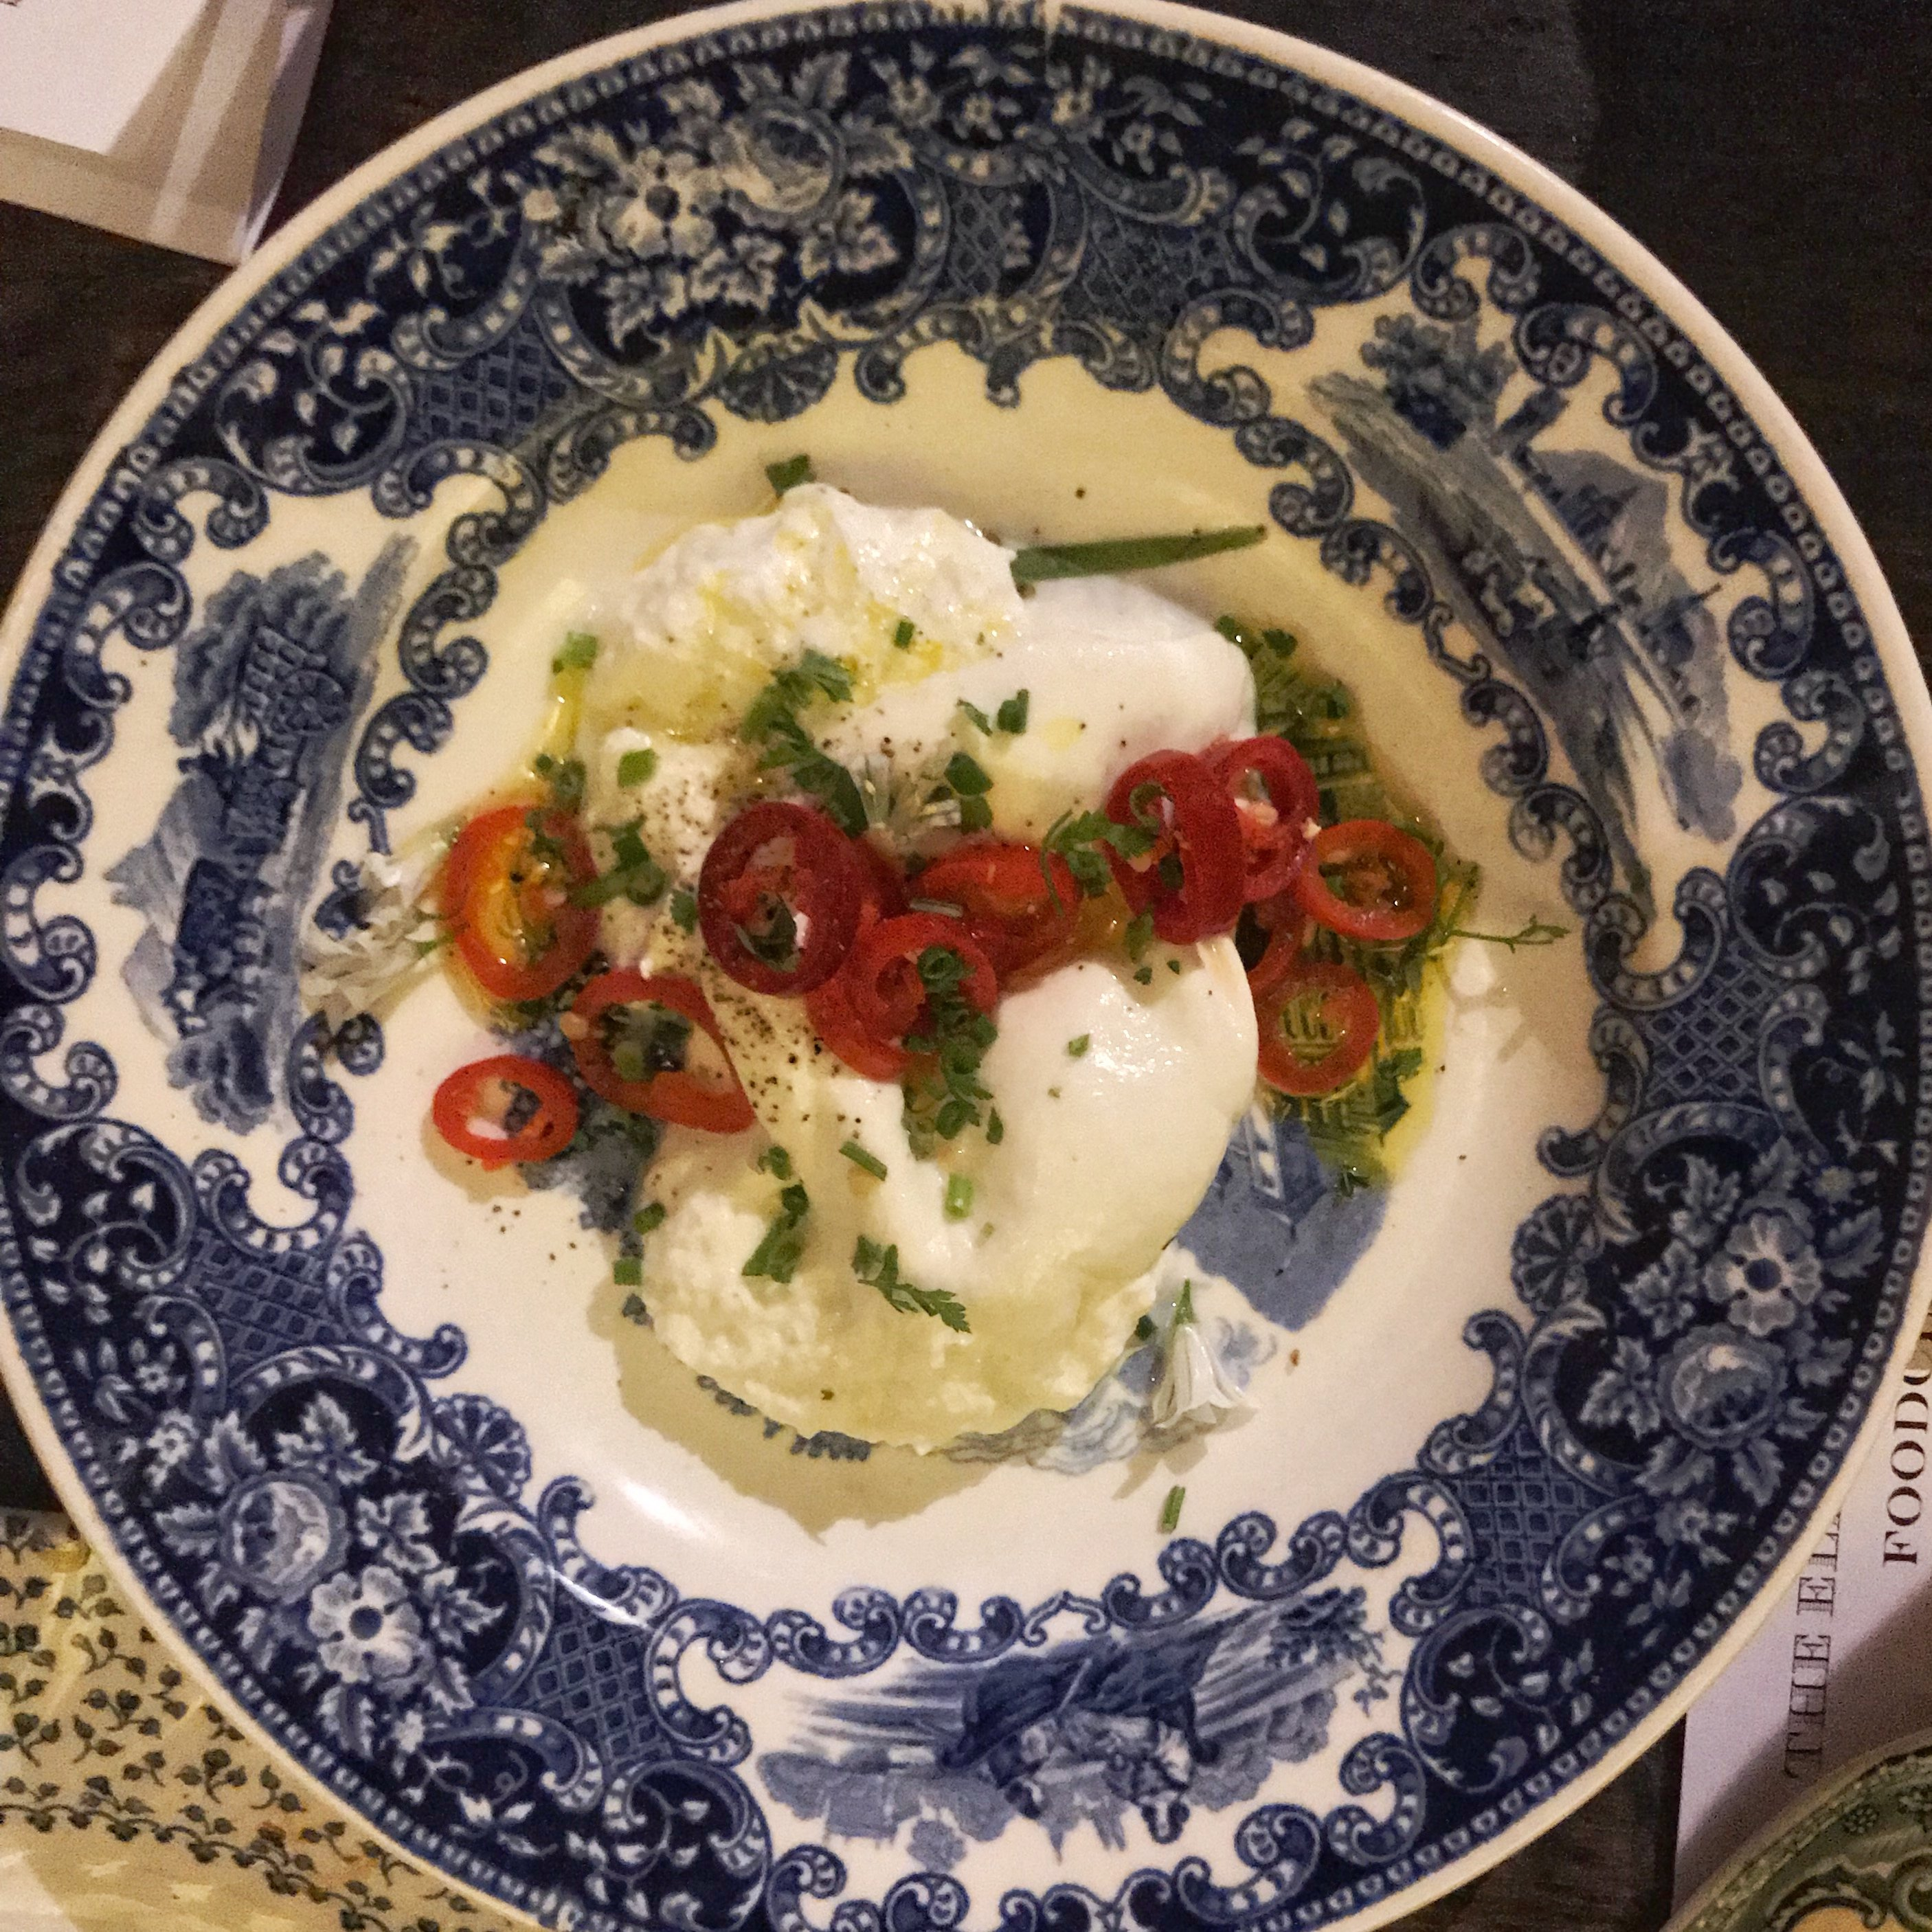 Foodchain Elephants Head pub Hackney burrata